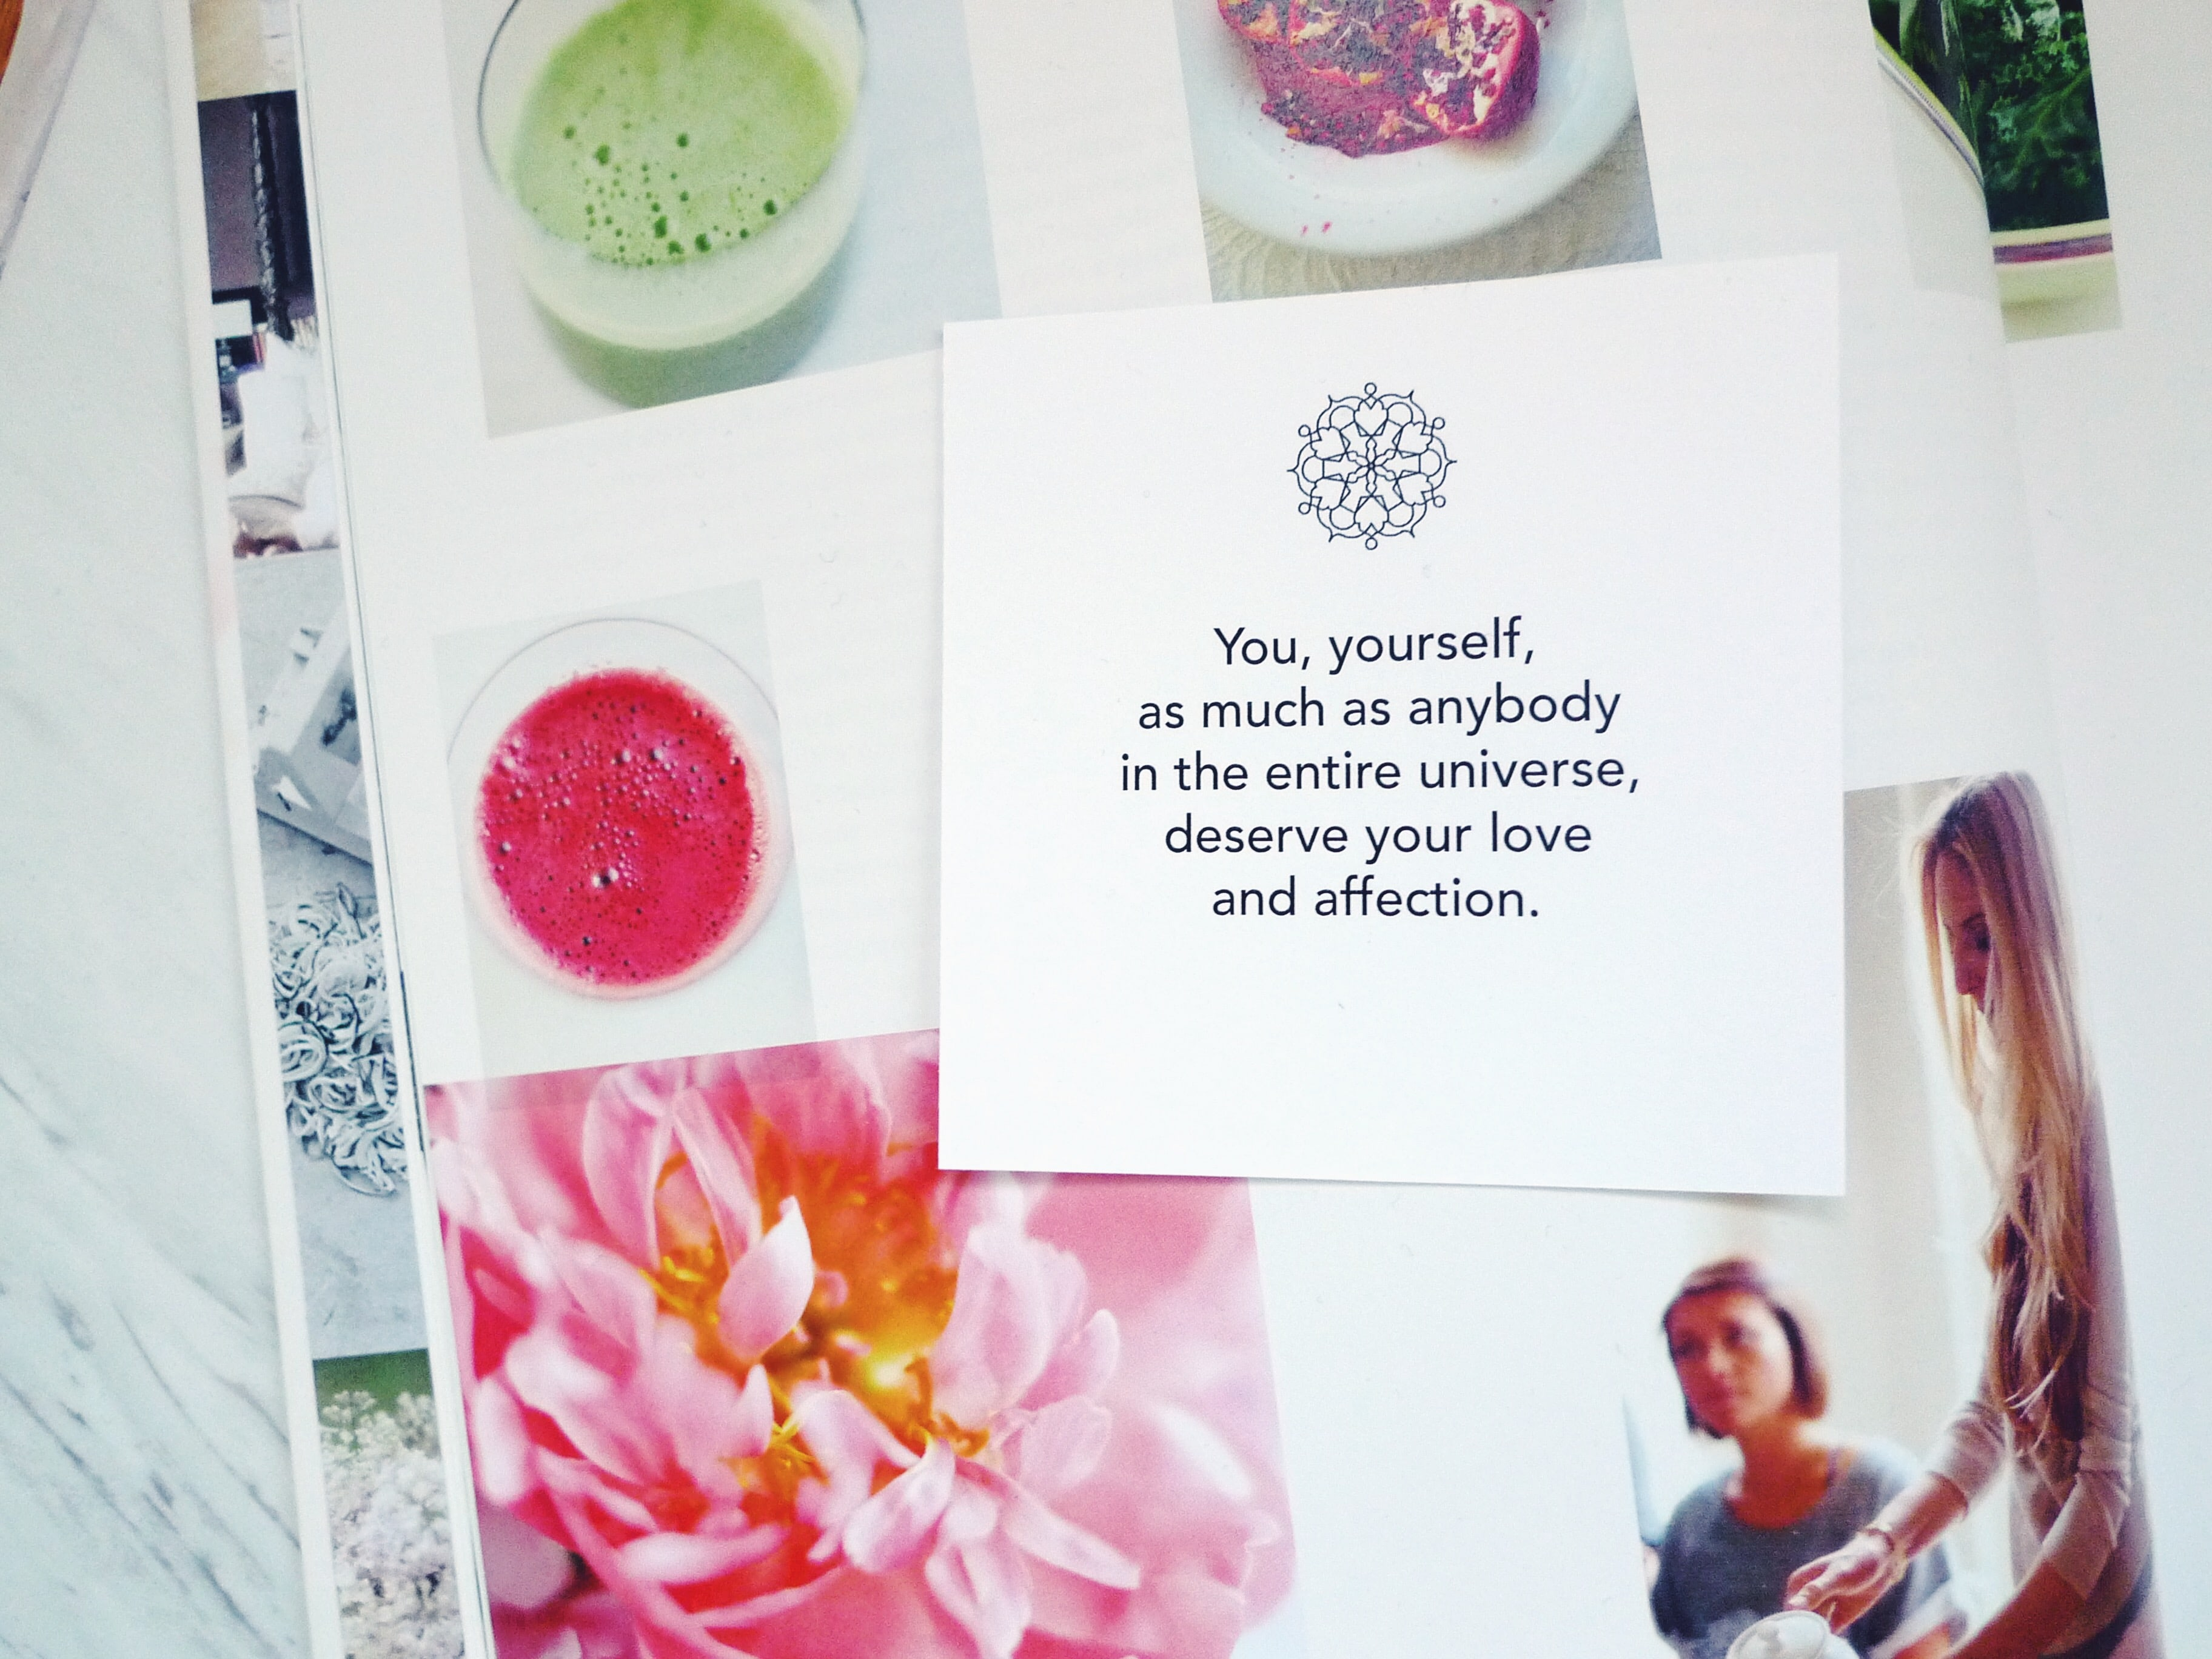 5 tips for dealing with your inner critic